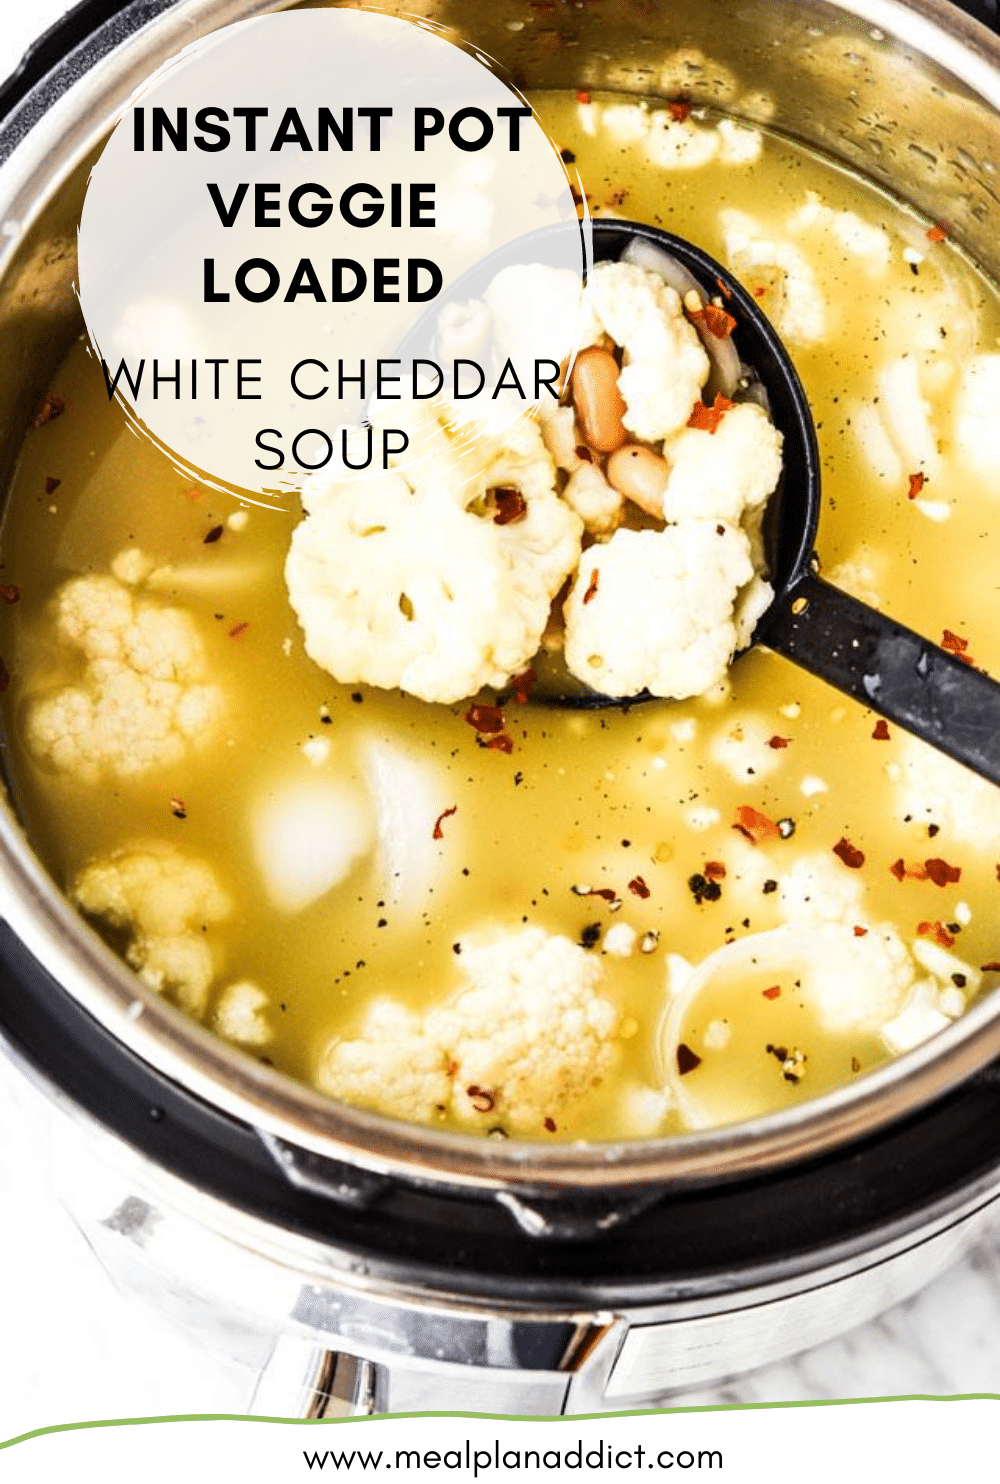 Instant Pot Veggie Loaded White Cheddar Soup